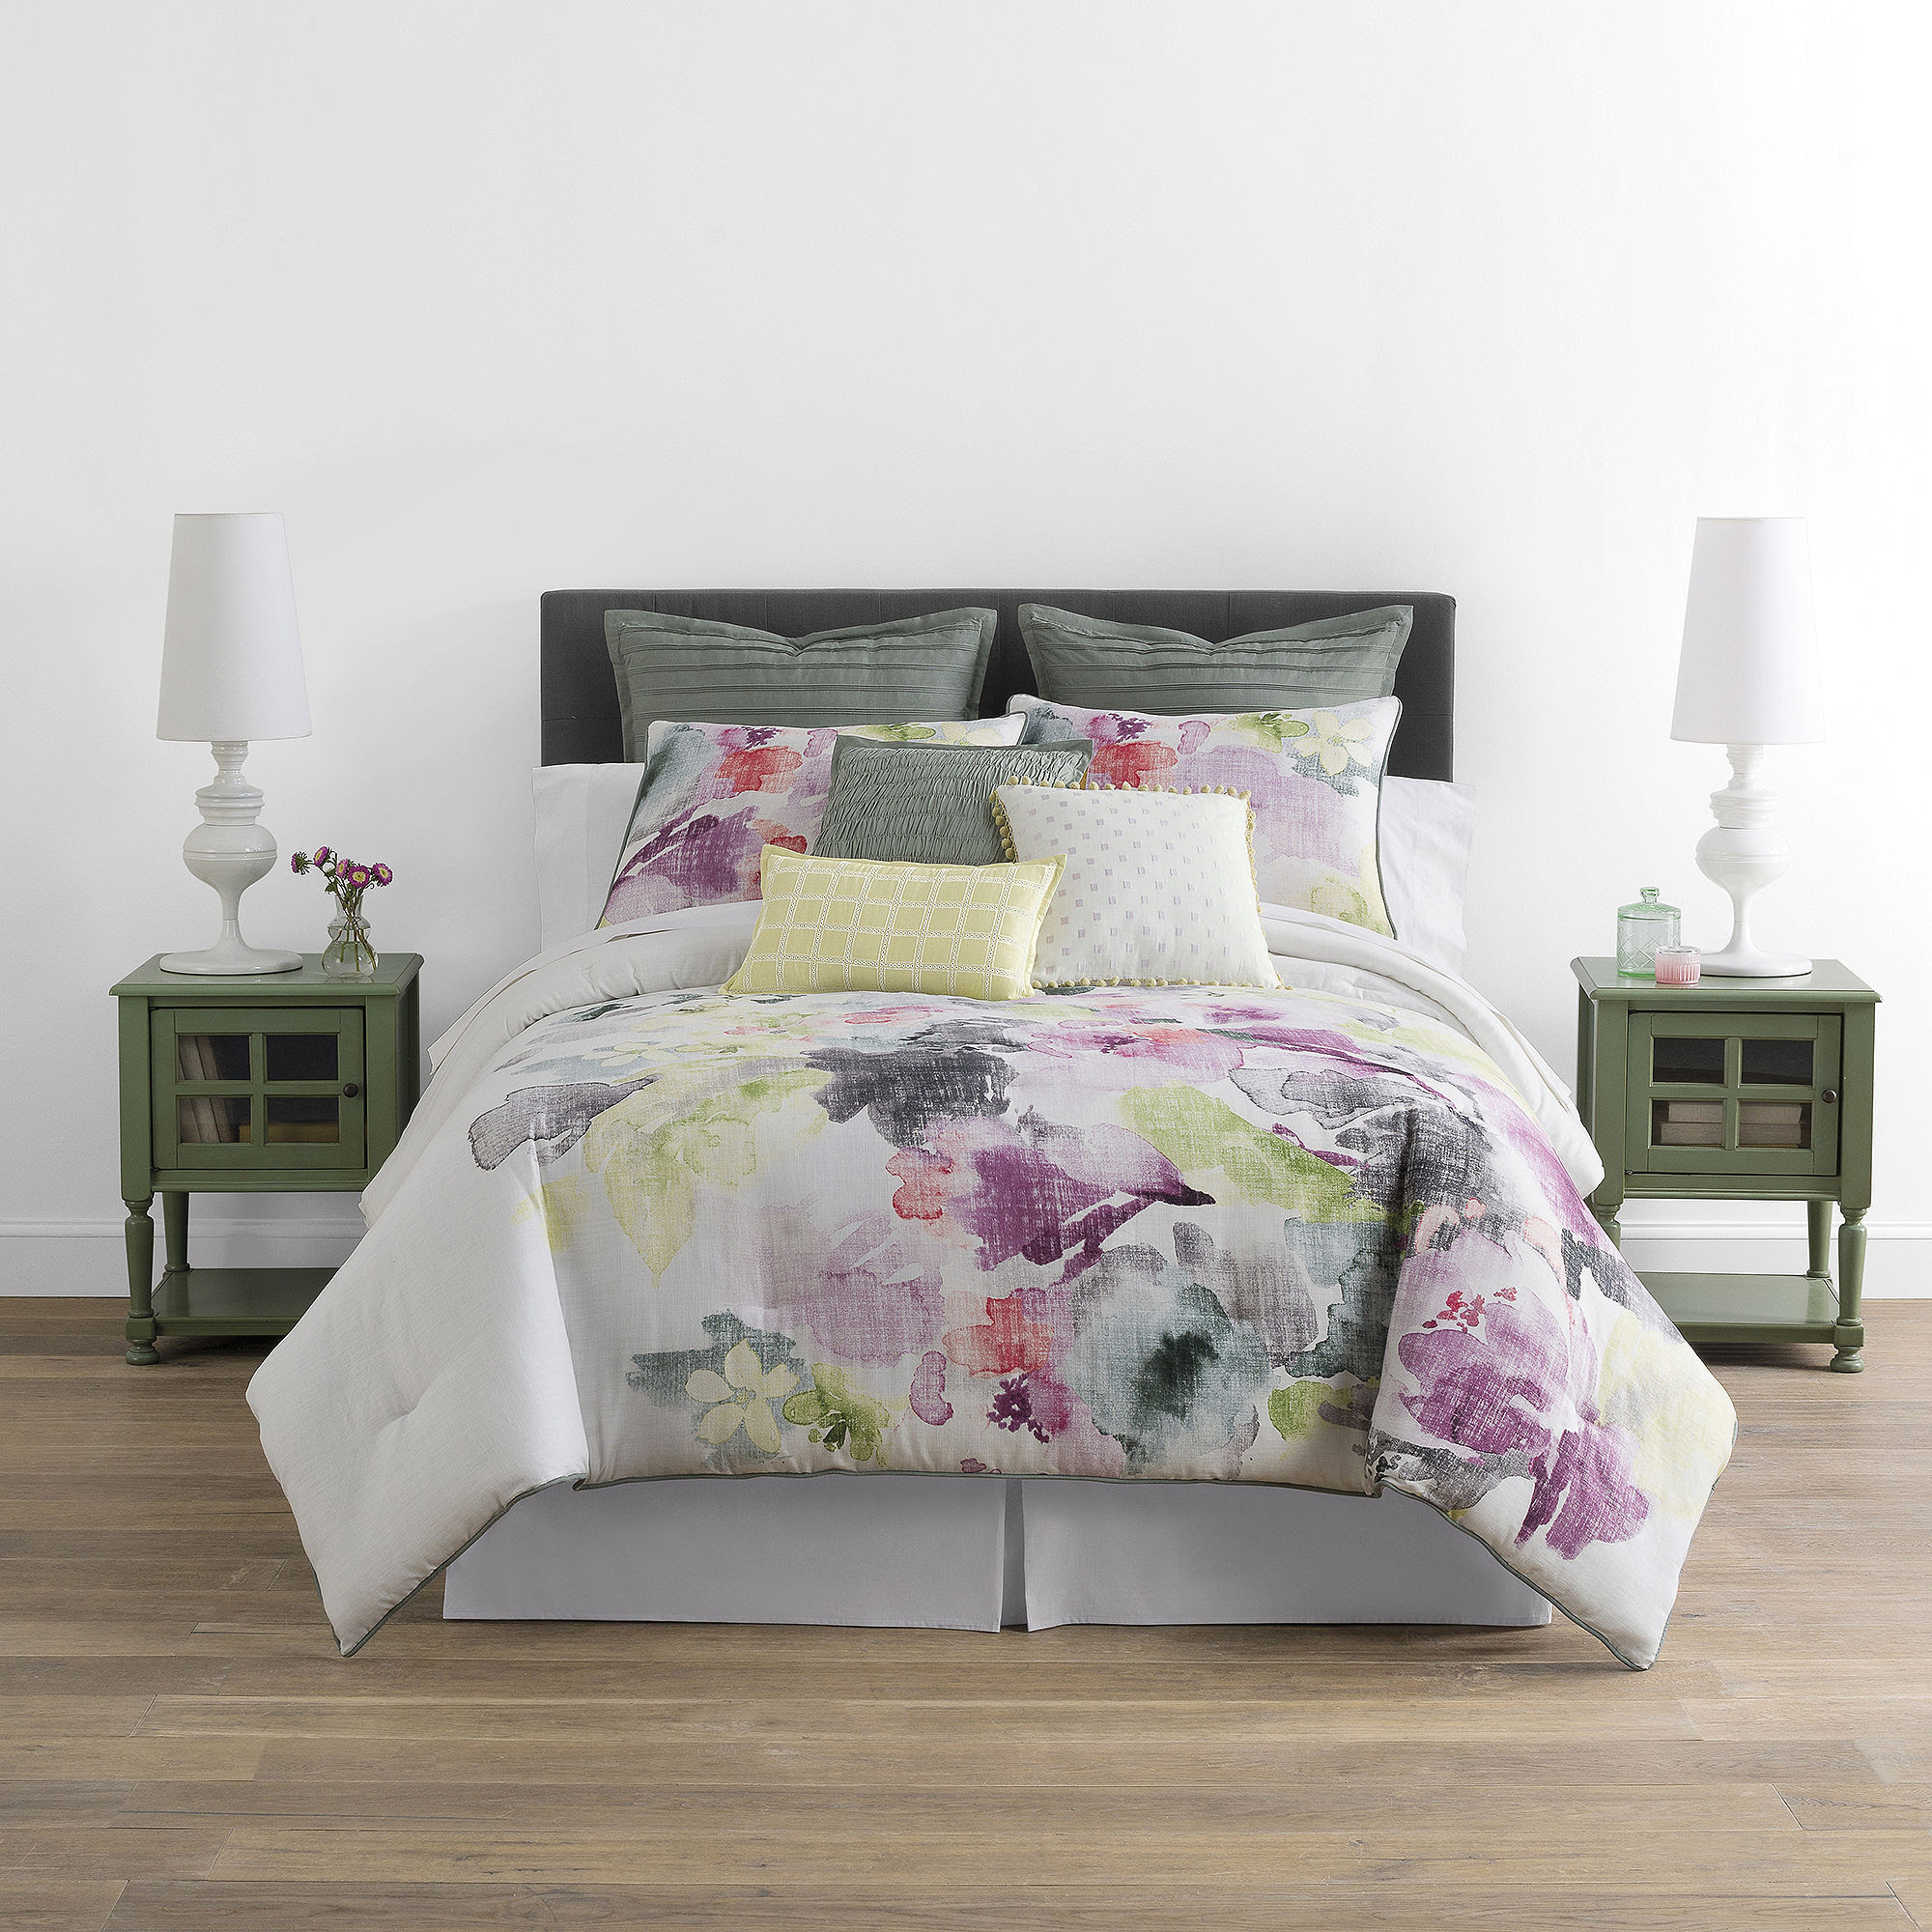 Jcpenneys Home Store: DEALS Mi Zone Camille Comforter Set NOW